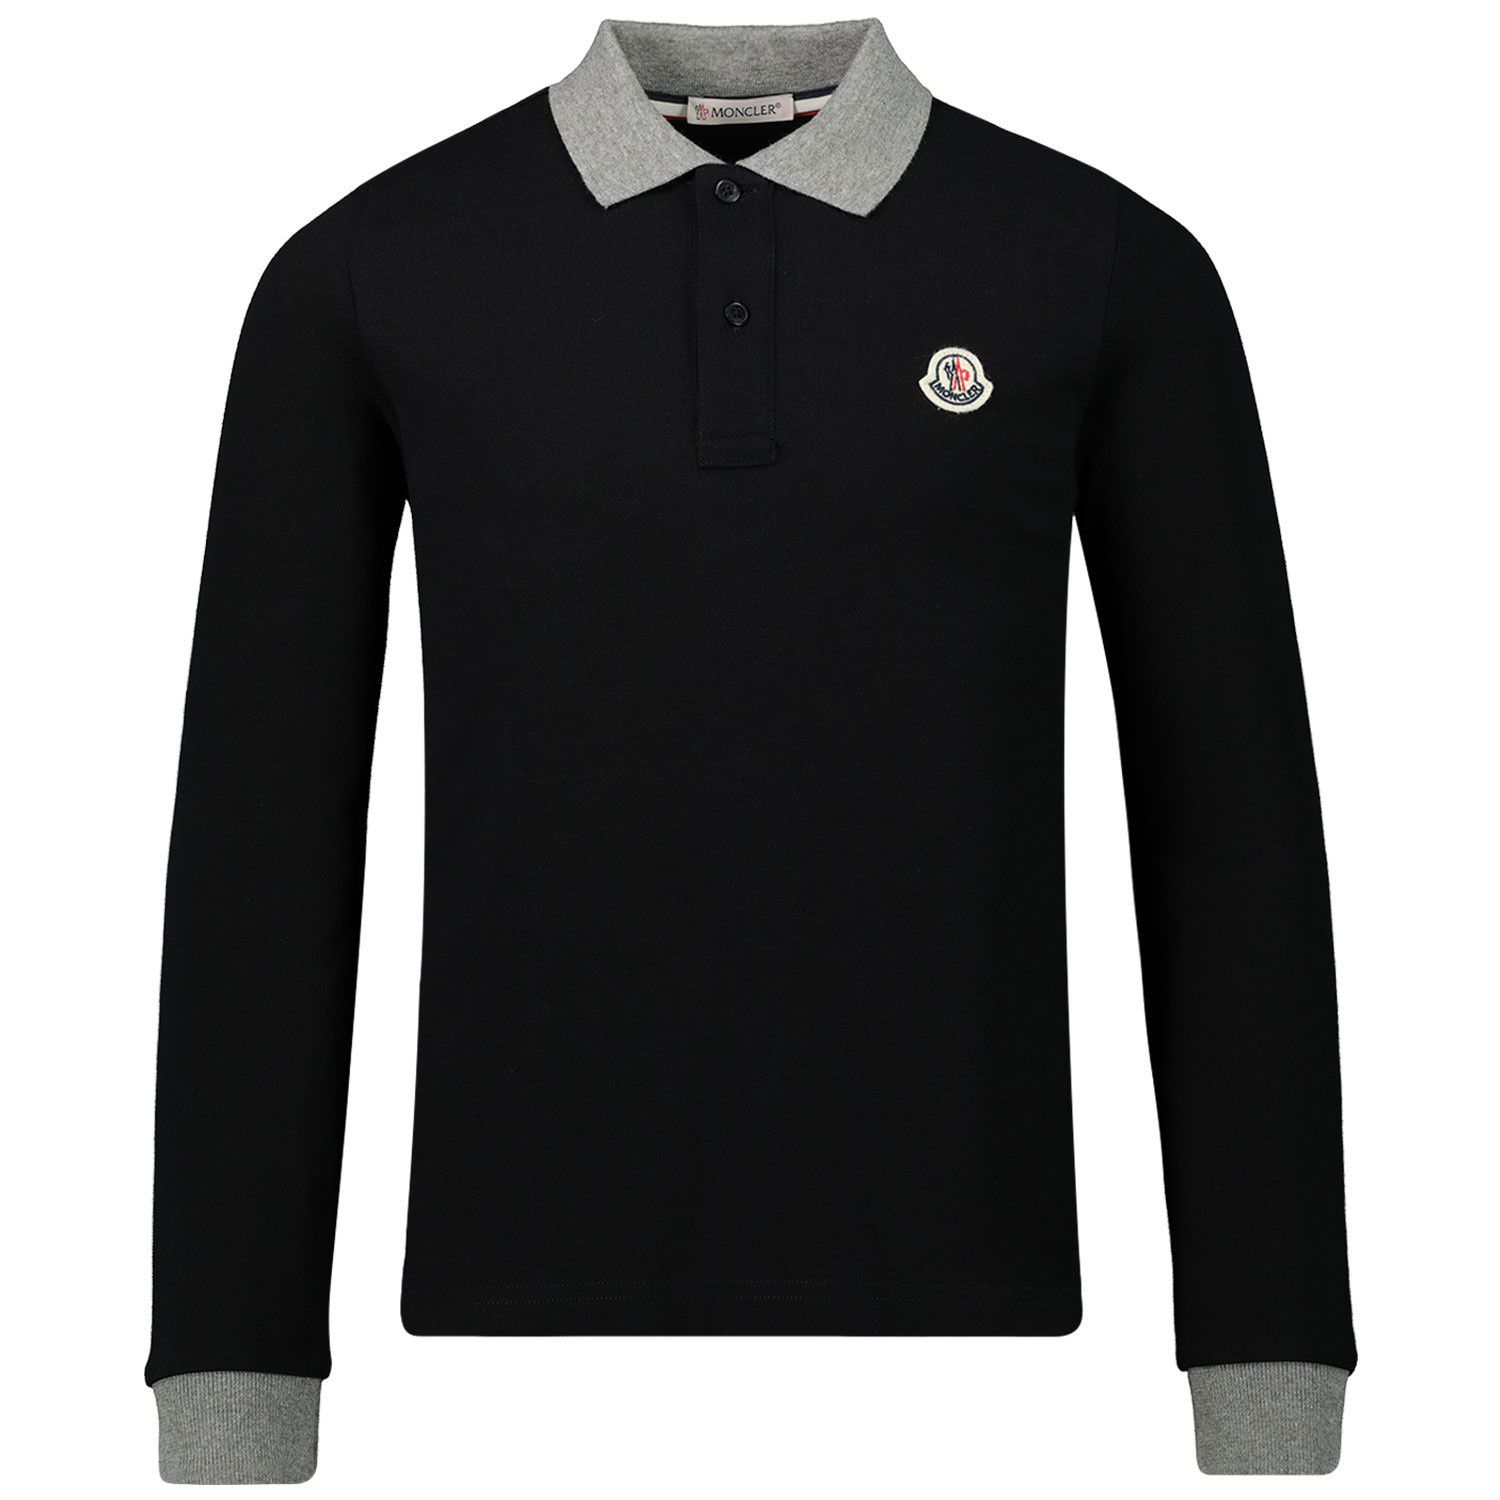 Picture of Moncler 8B70820 kids polo shirt black